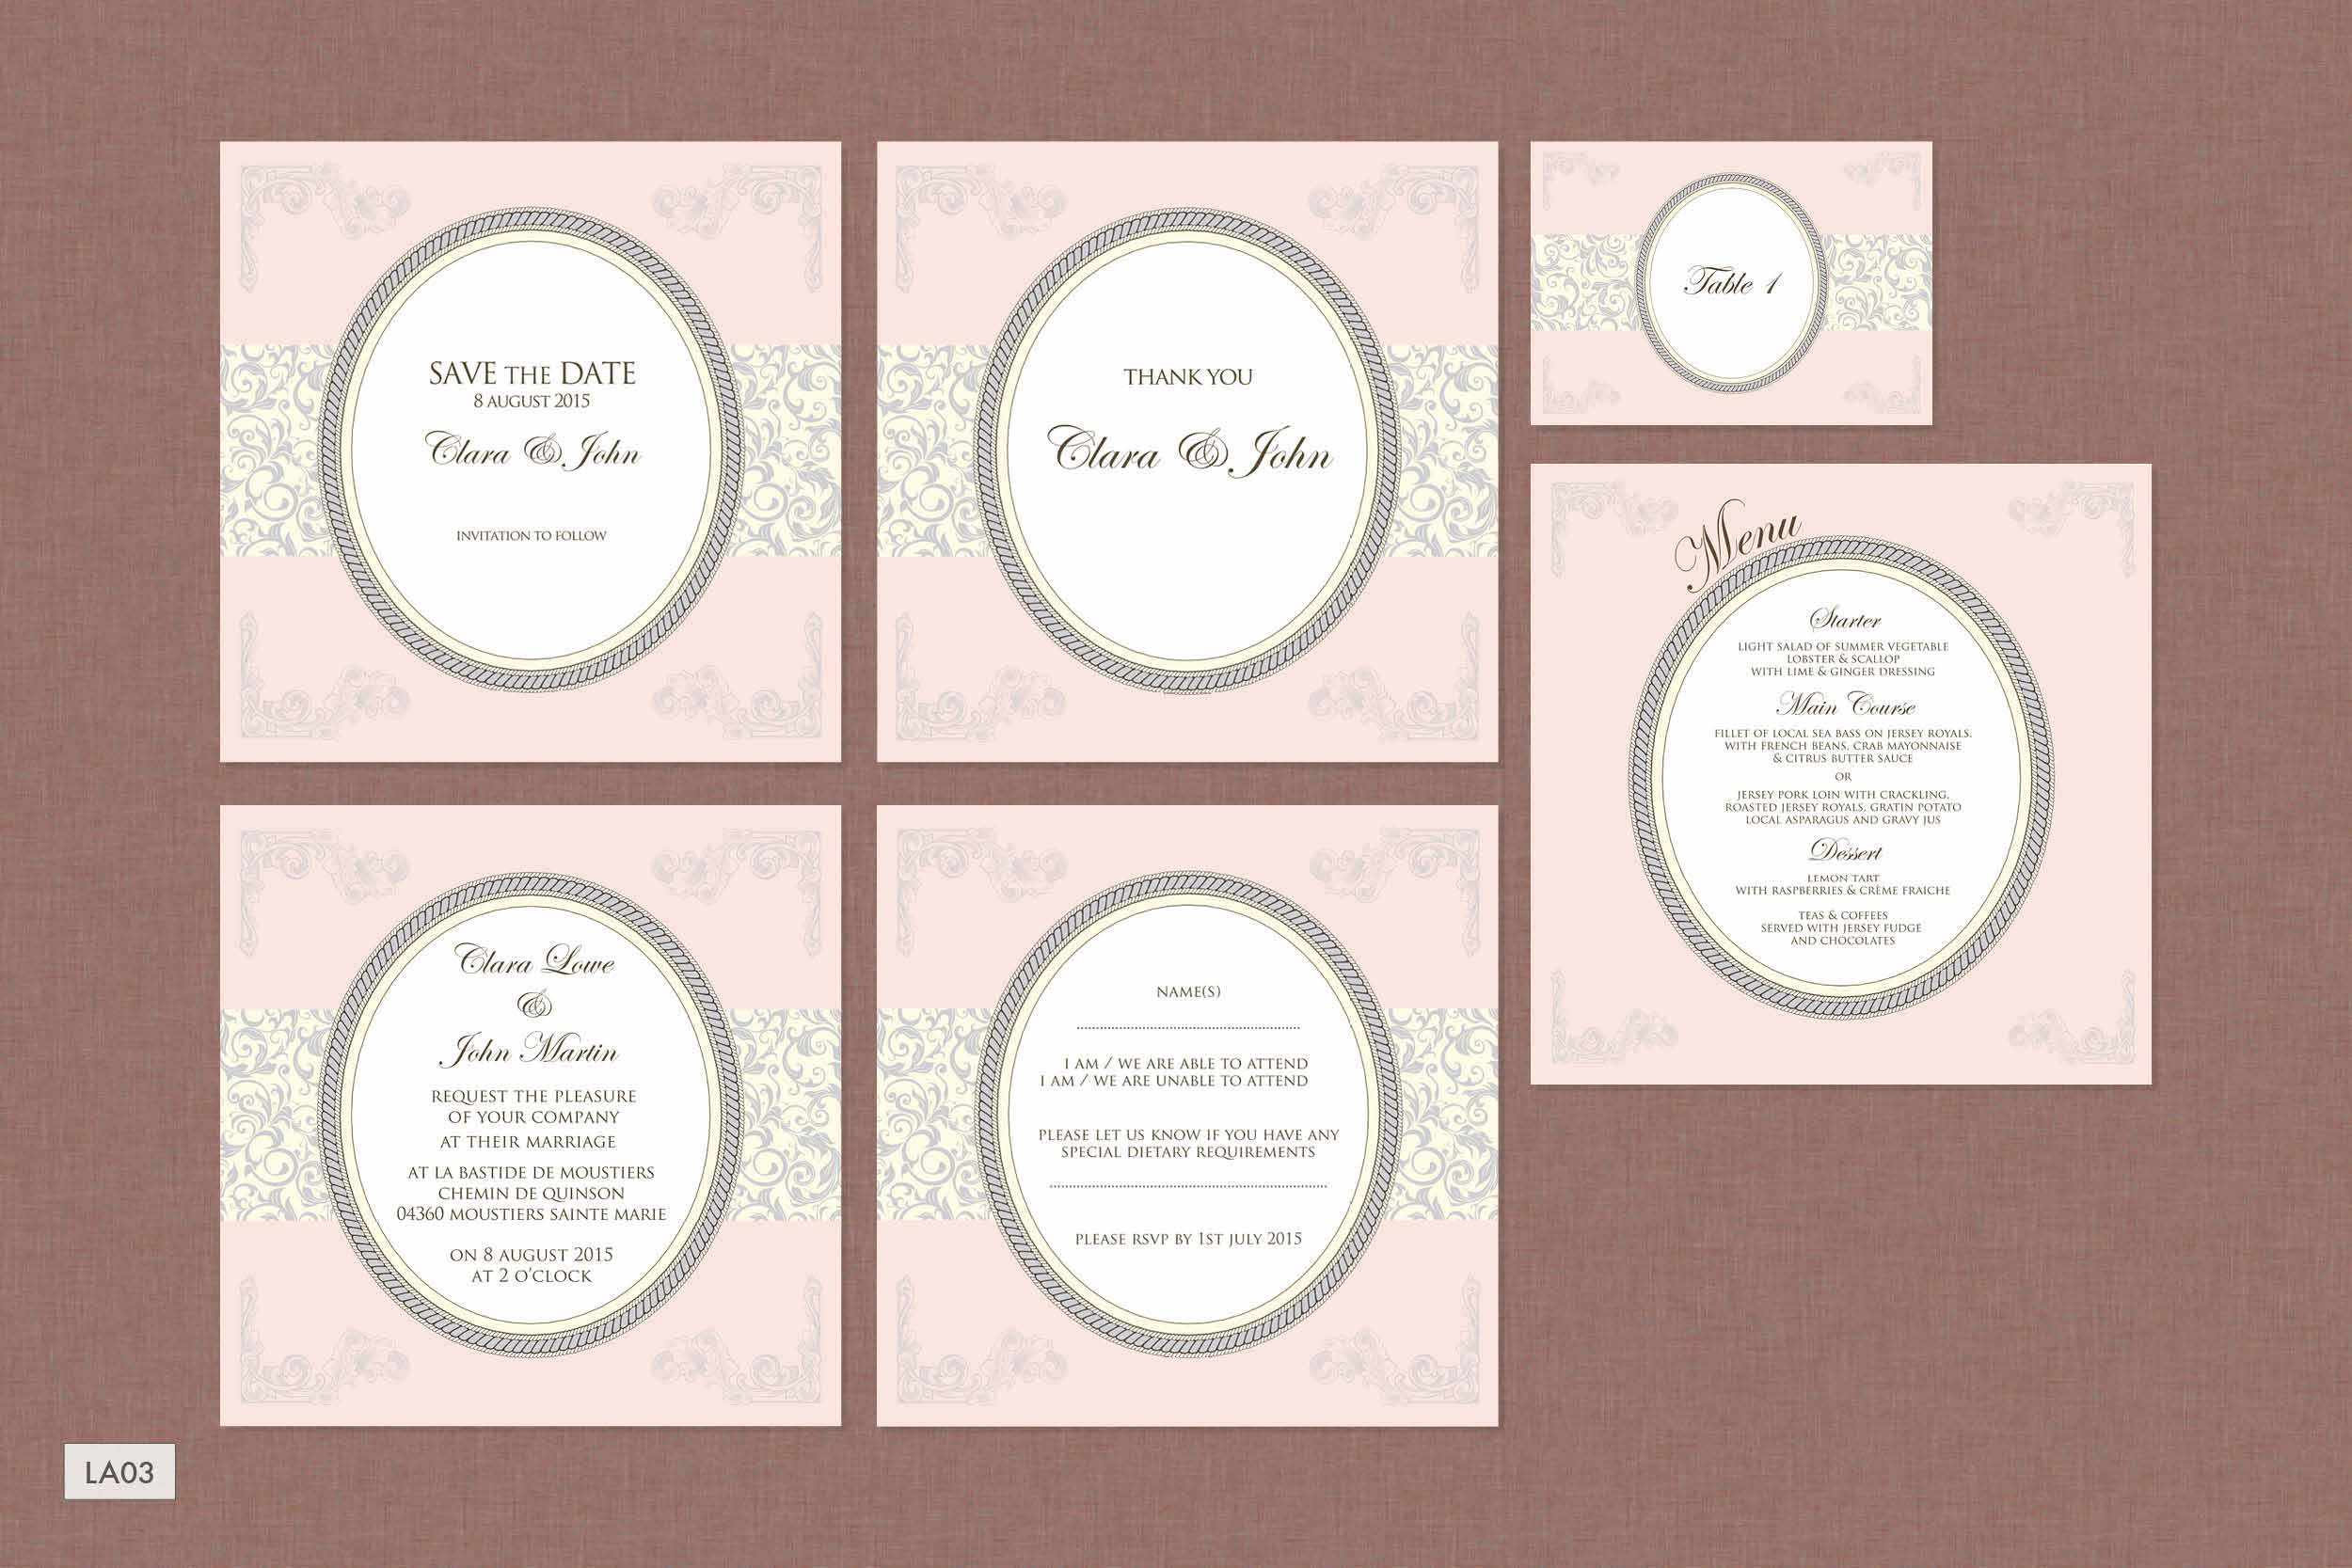 ananya-wedding-stationery-lace11.jpg